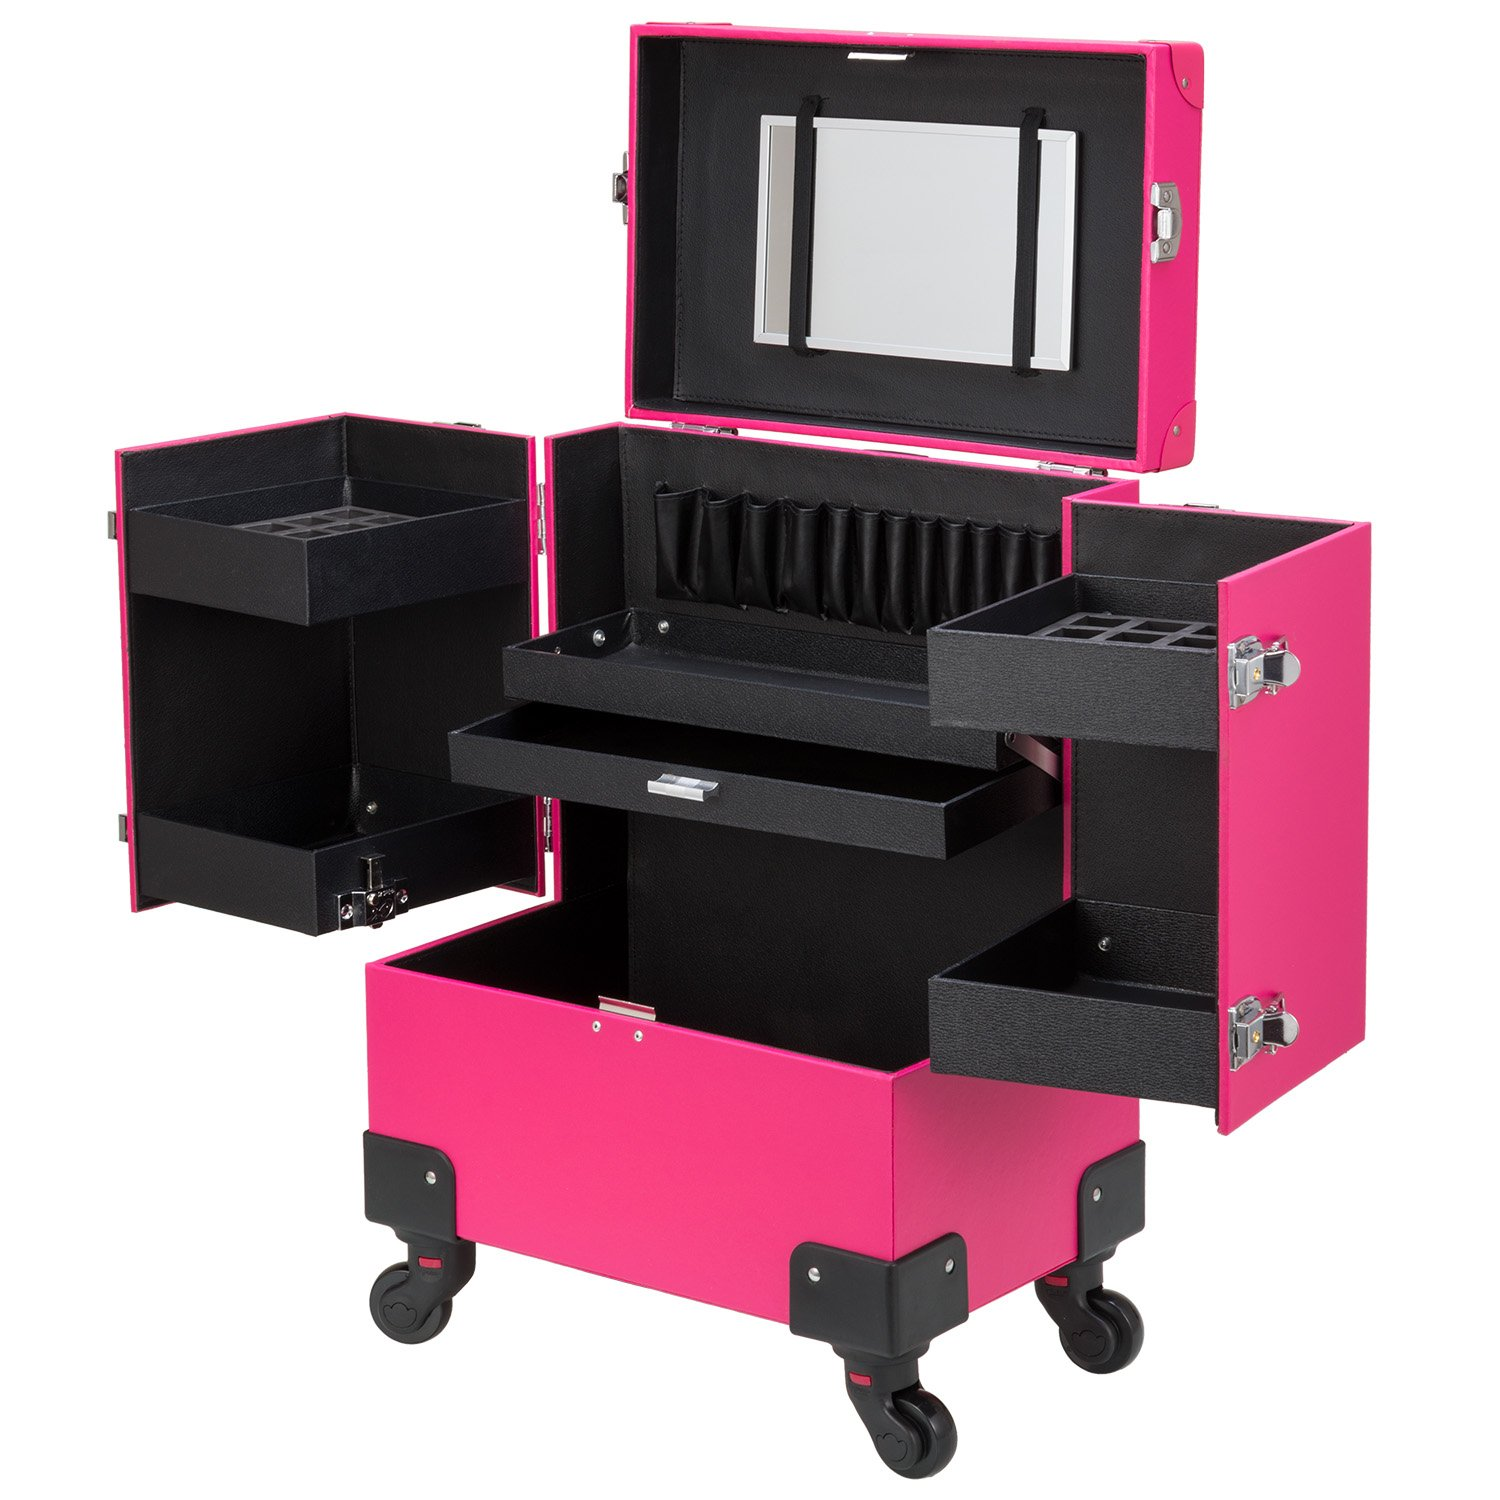 Ollieroo Makeup Train Case Rose-Pink Lockable PU Artist Makeup Cosmetic Train Case with 4 Removable Rolling Wheels and 4 Keys by Ollieroo